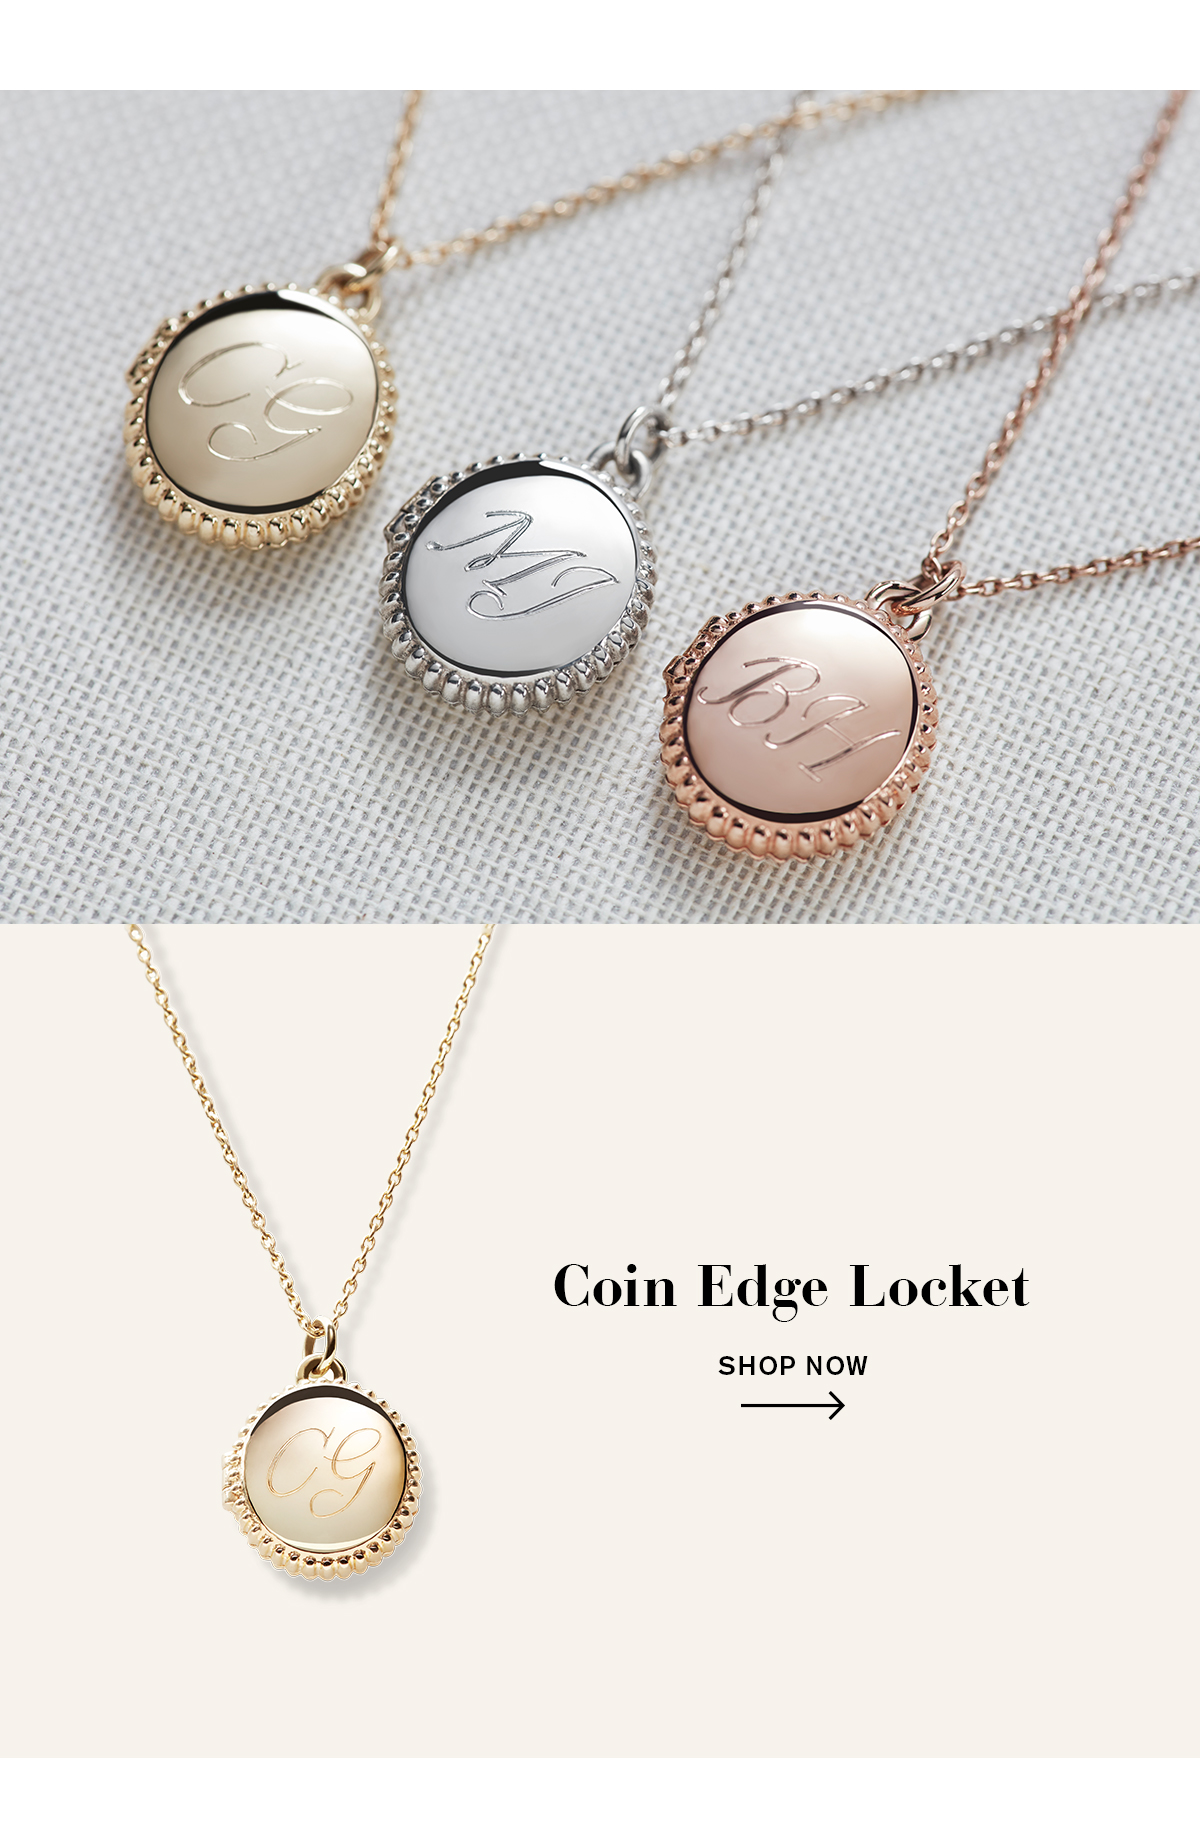 Coin Edge Locket